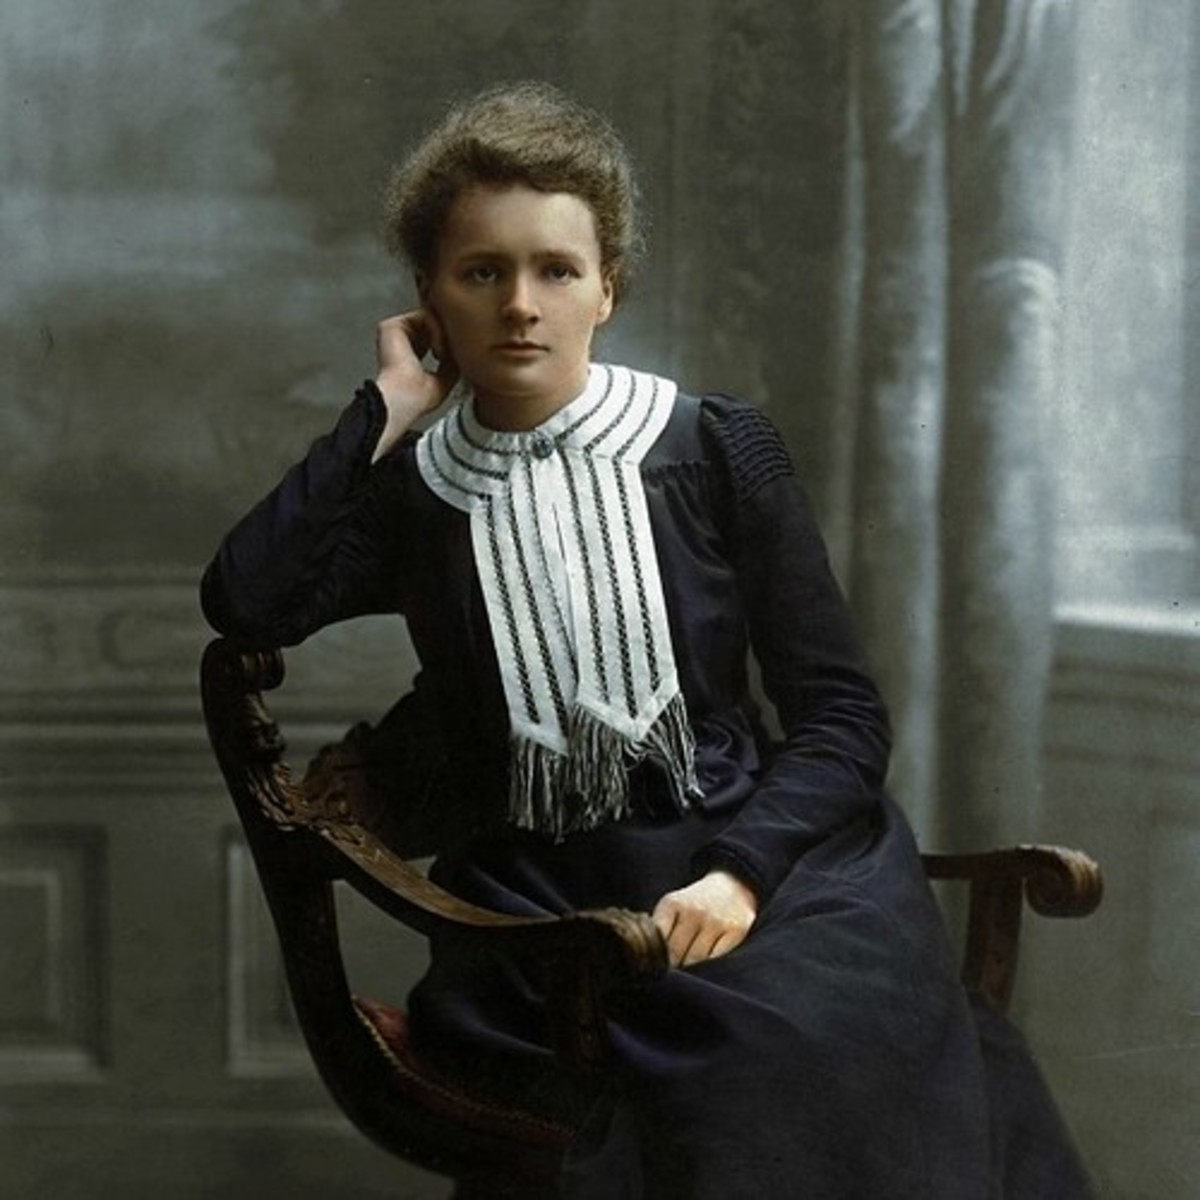 One of the world's greatest scientists, male or female, Marie Curie, was denied membership in the French Academy of Science in 1911 on the grounds that she was a woman.